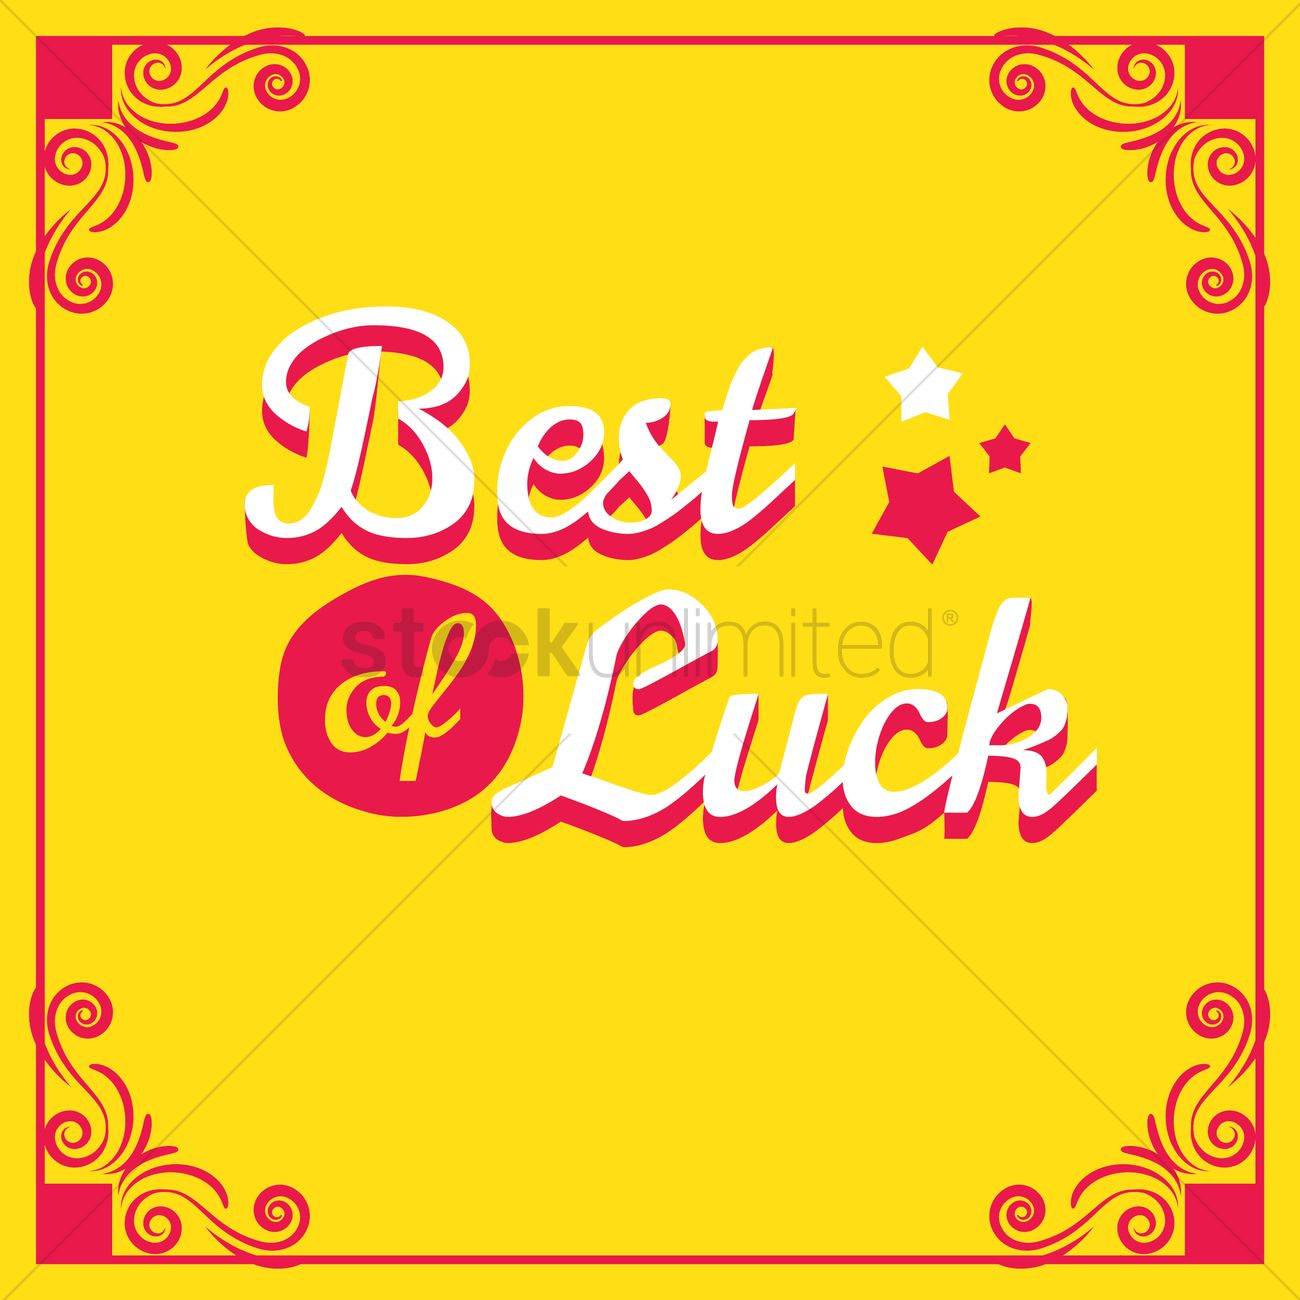 Best of luck greeting vector image 1616985 stockunlimited best of luck greeting vector graphic kristyandbryce Images